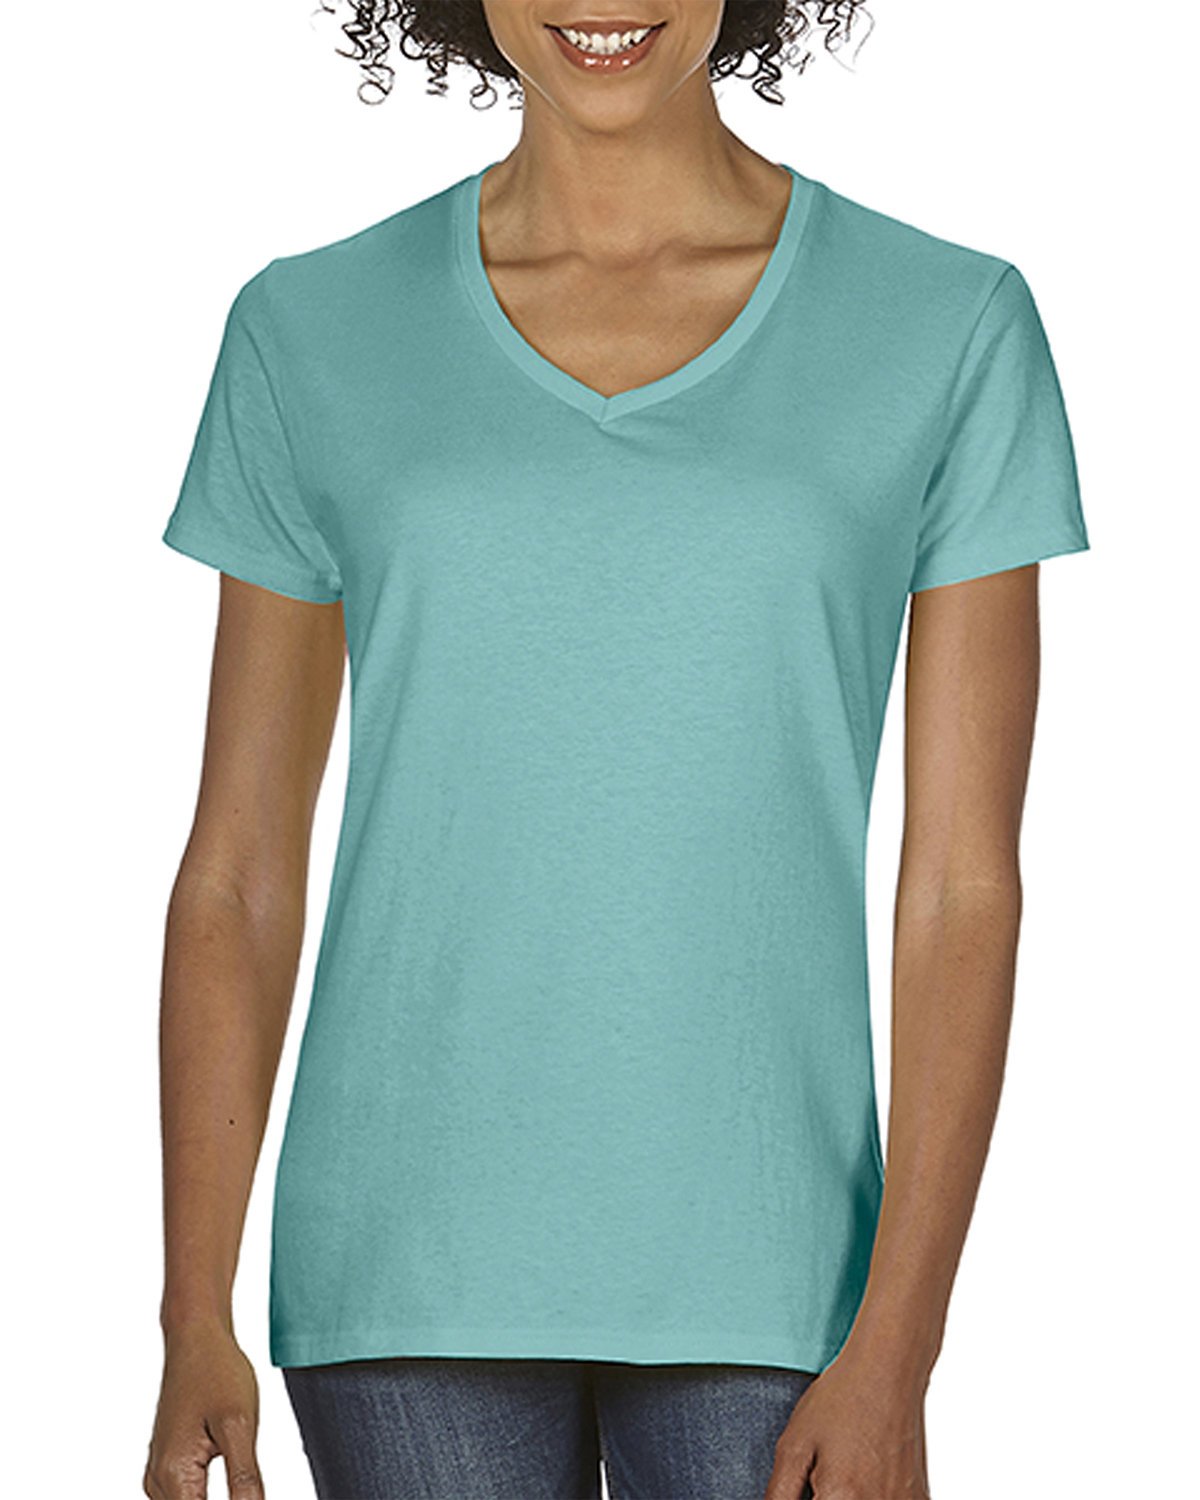 Comfort Colors Ladies' Midweight V-Neck T-Shirt ISLAND REEF